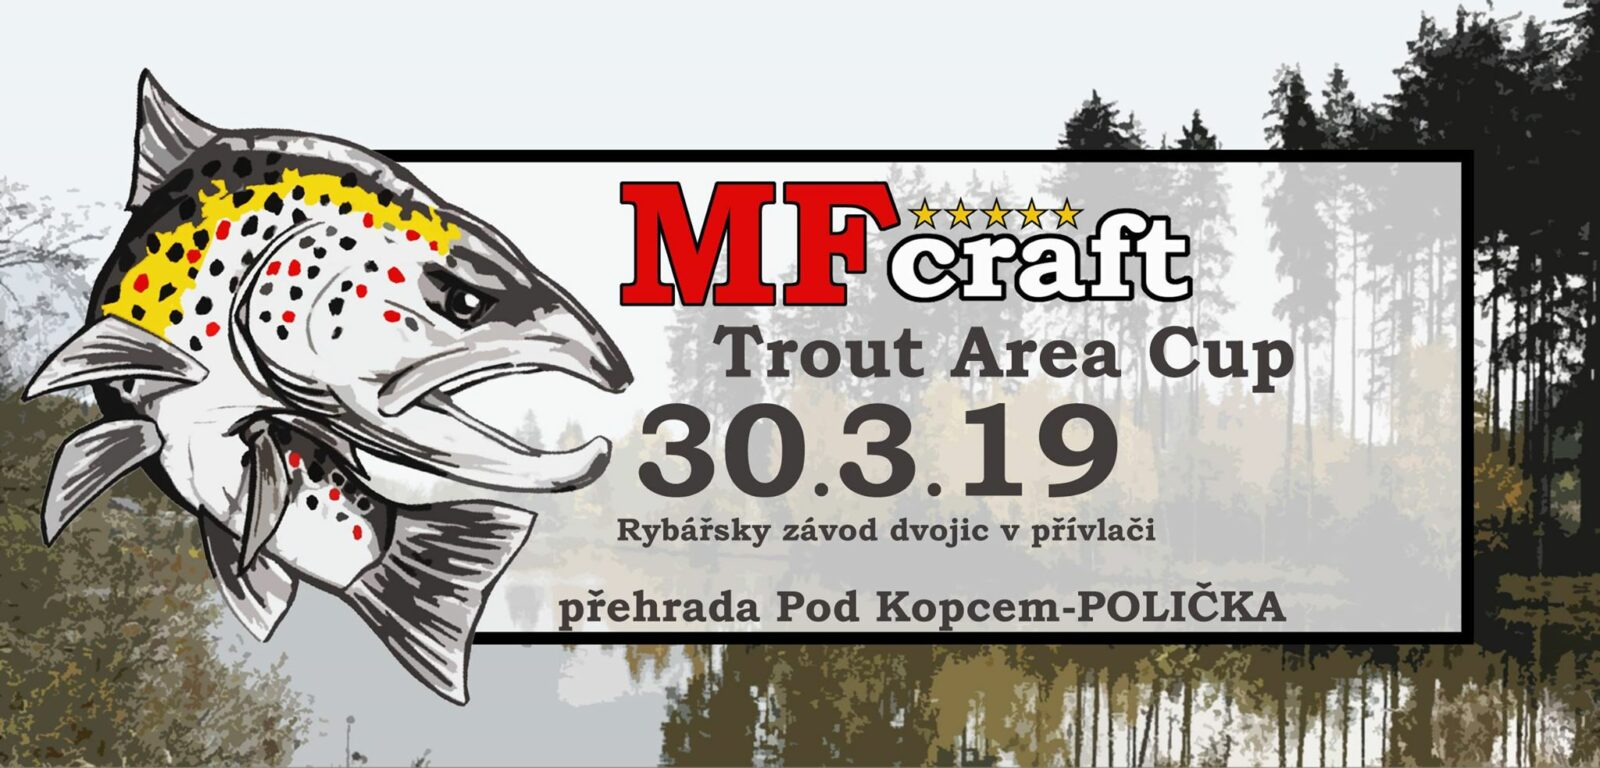 MFCraft Trout Area CUP 2019 PRSO.me